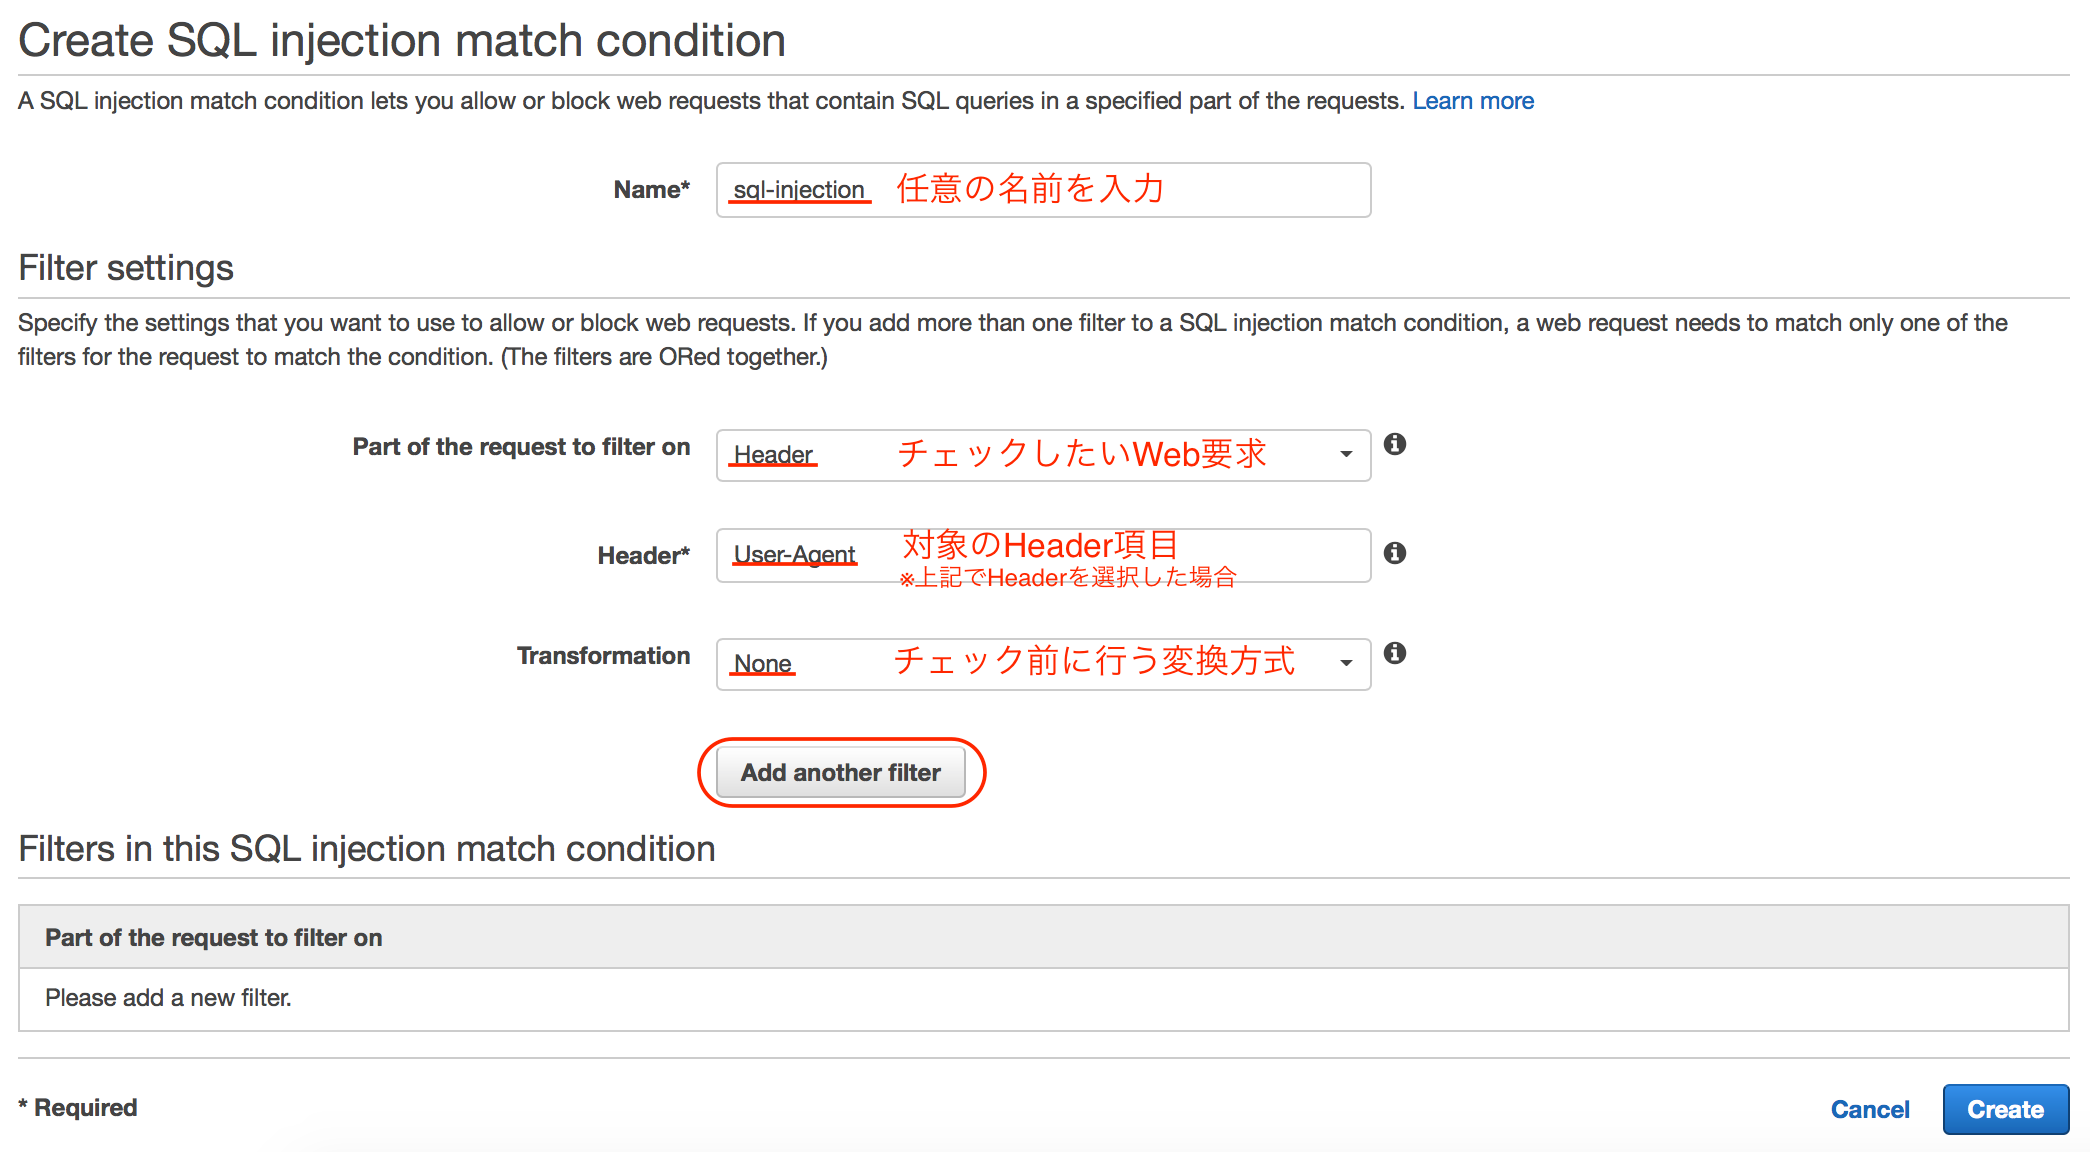 aws-waf_sql-injection_2015120403.png